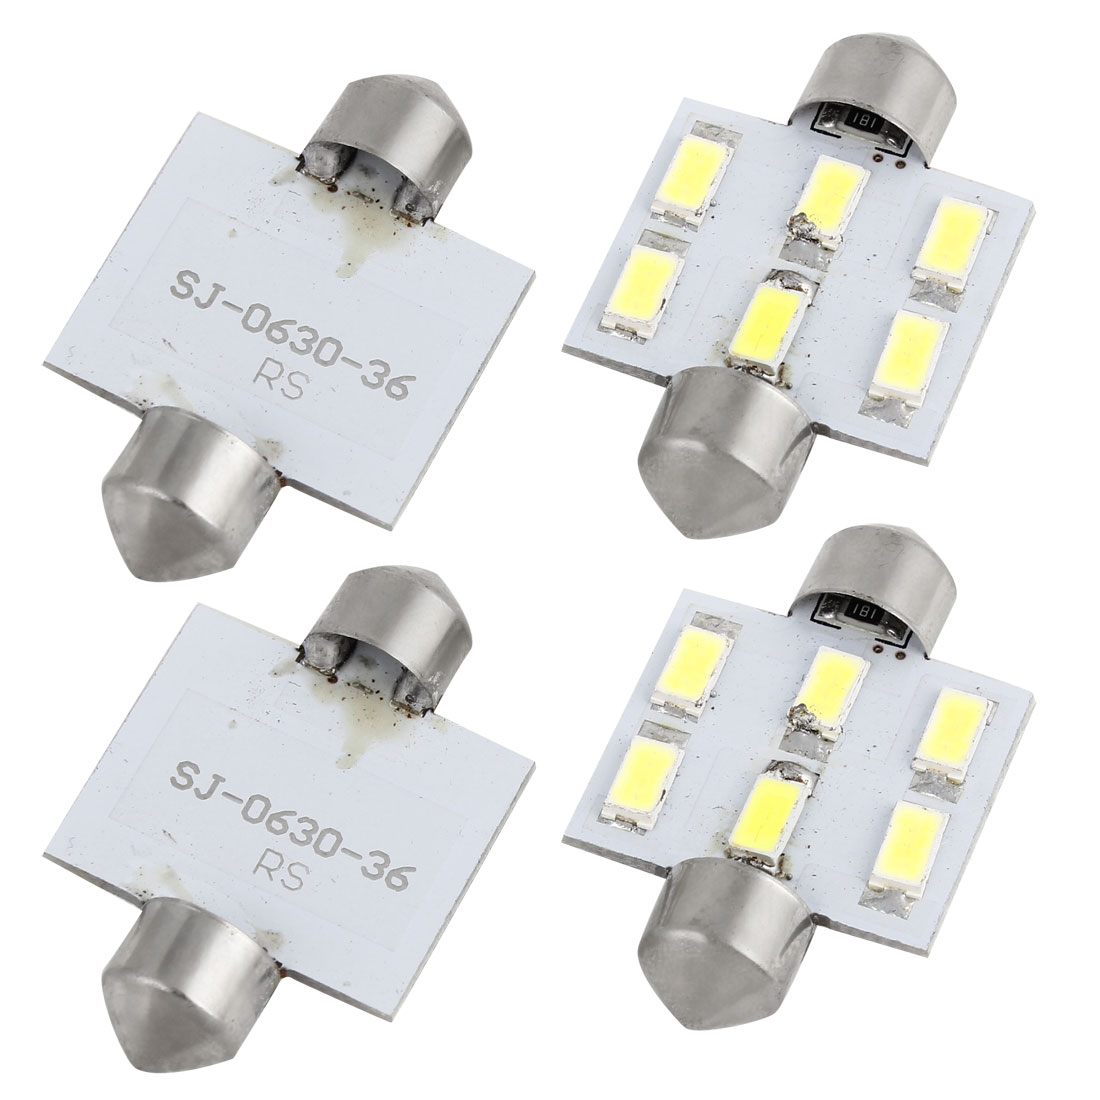 4 Pcs Car Auto 5630 6 SMD Festoon Internal LED Light Dome Lamp 36mm White